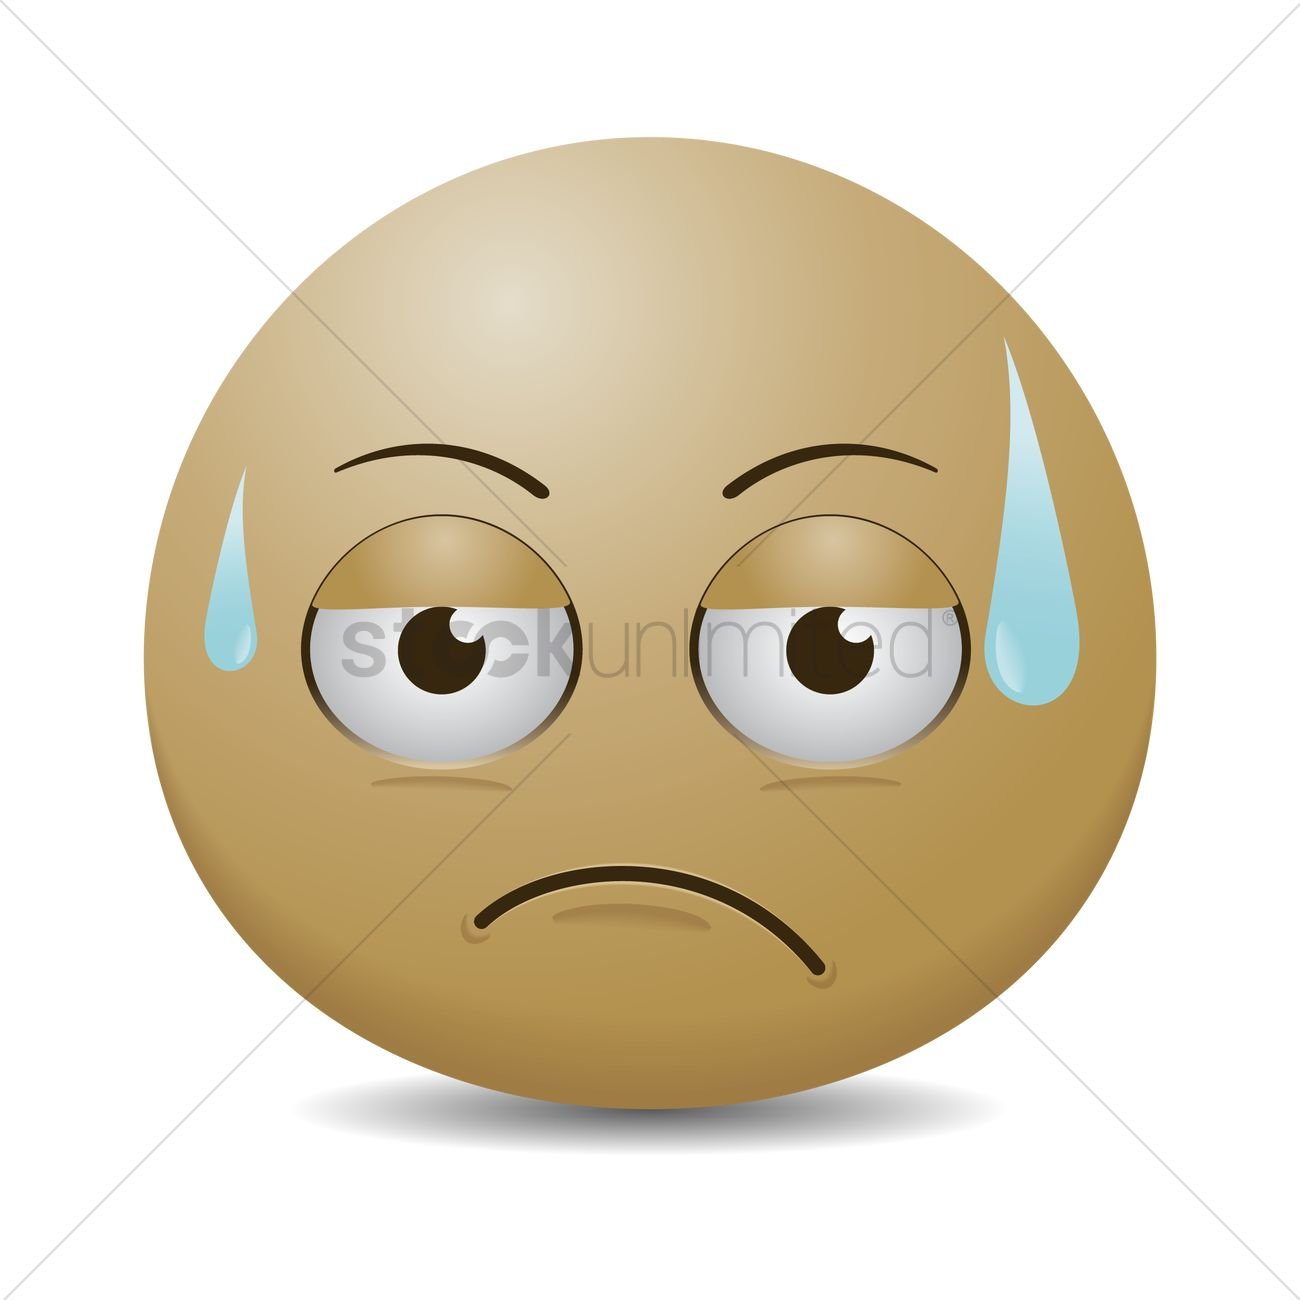 Smiley Emoticon Upset And Sweating Vector Image 1477329